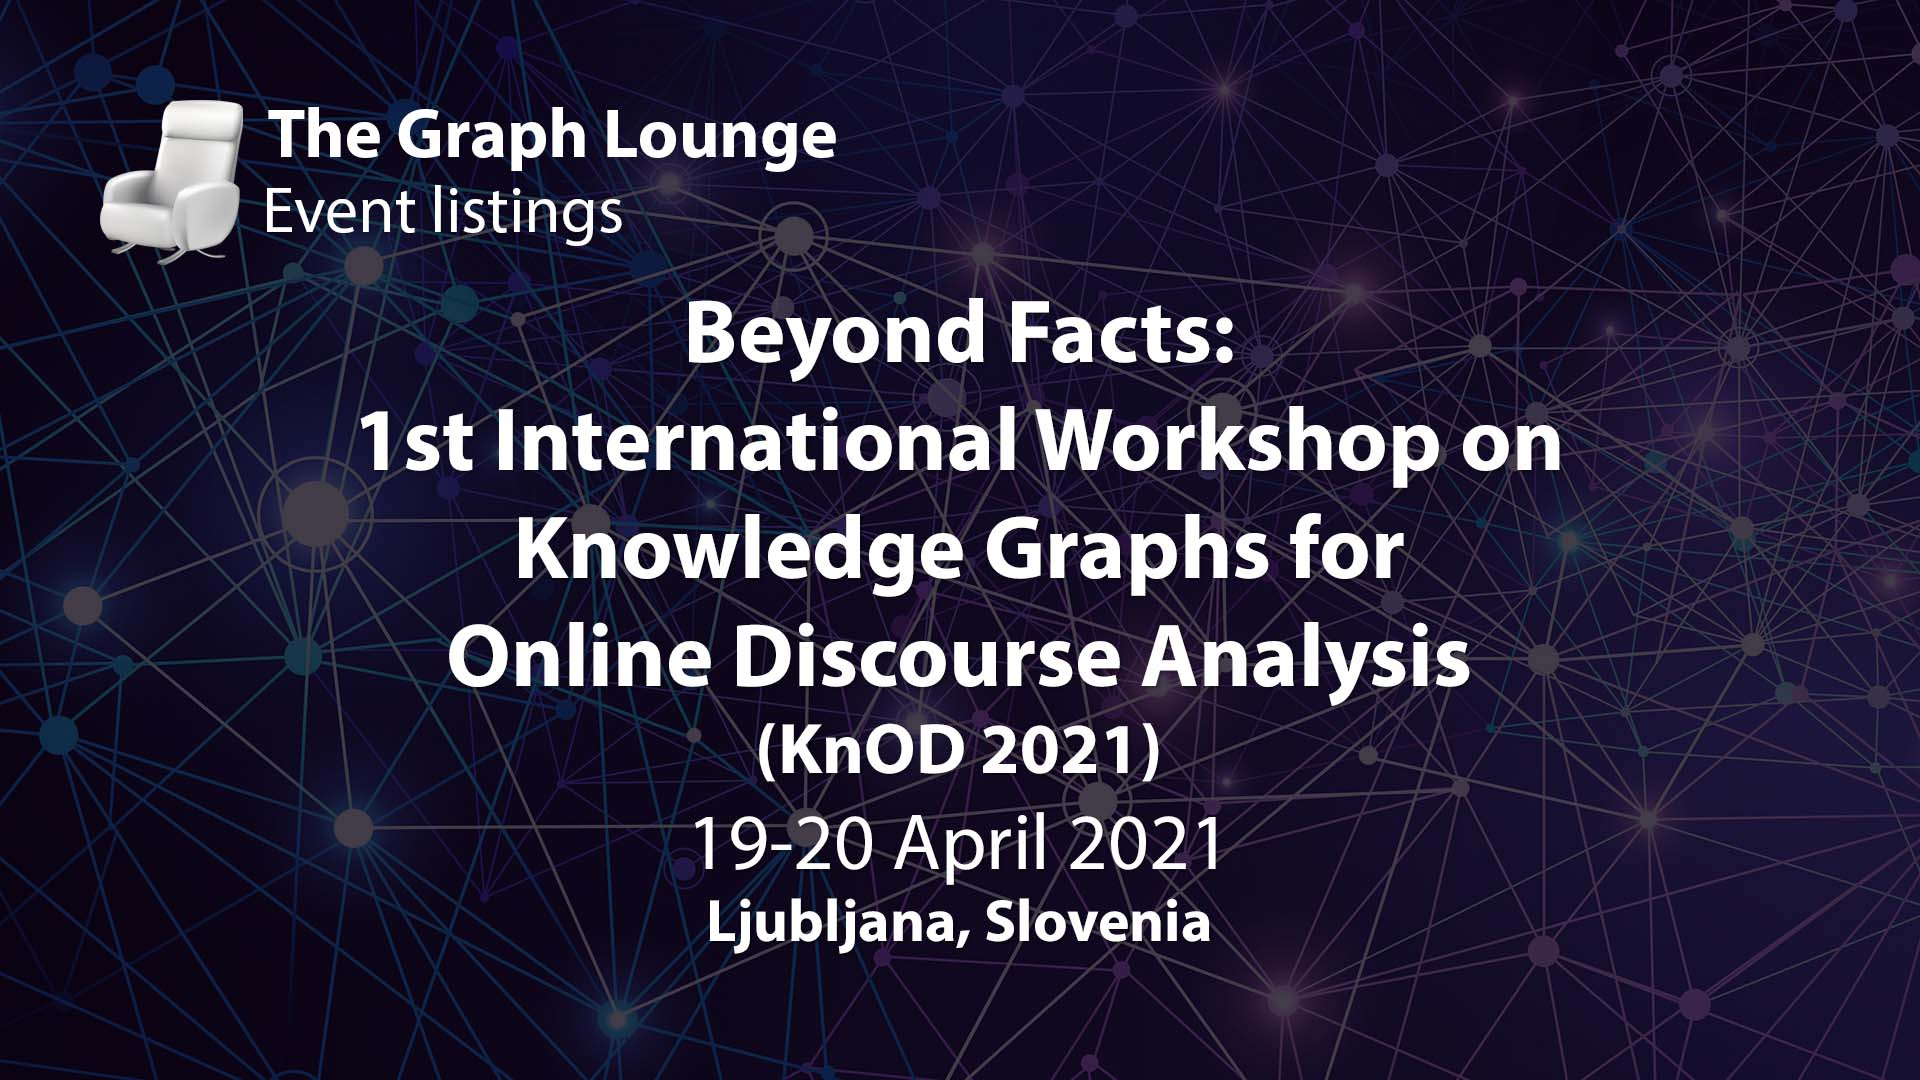 Beyond Facts: 1st International Workshop on Knowledge Graphs for Online Discourse Analysis (KnOD 2021)